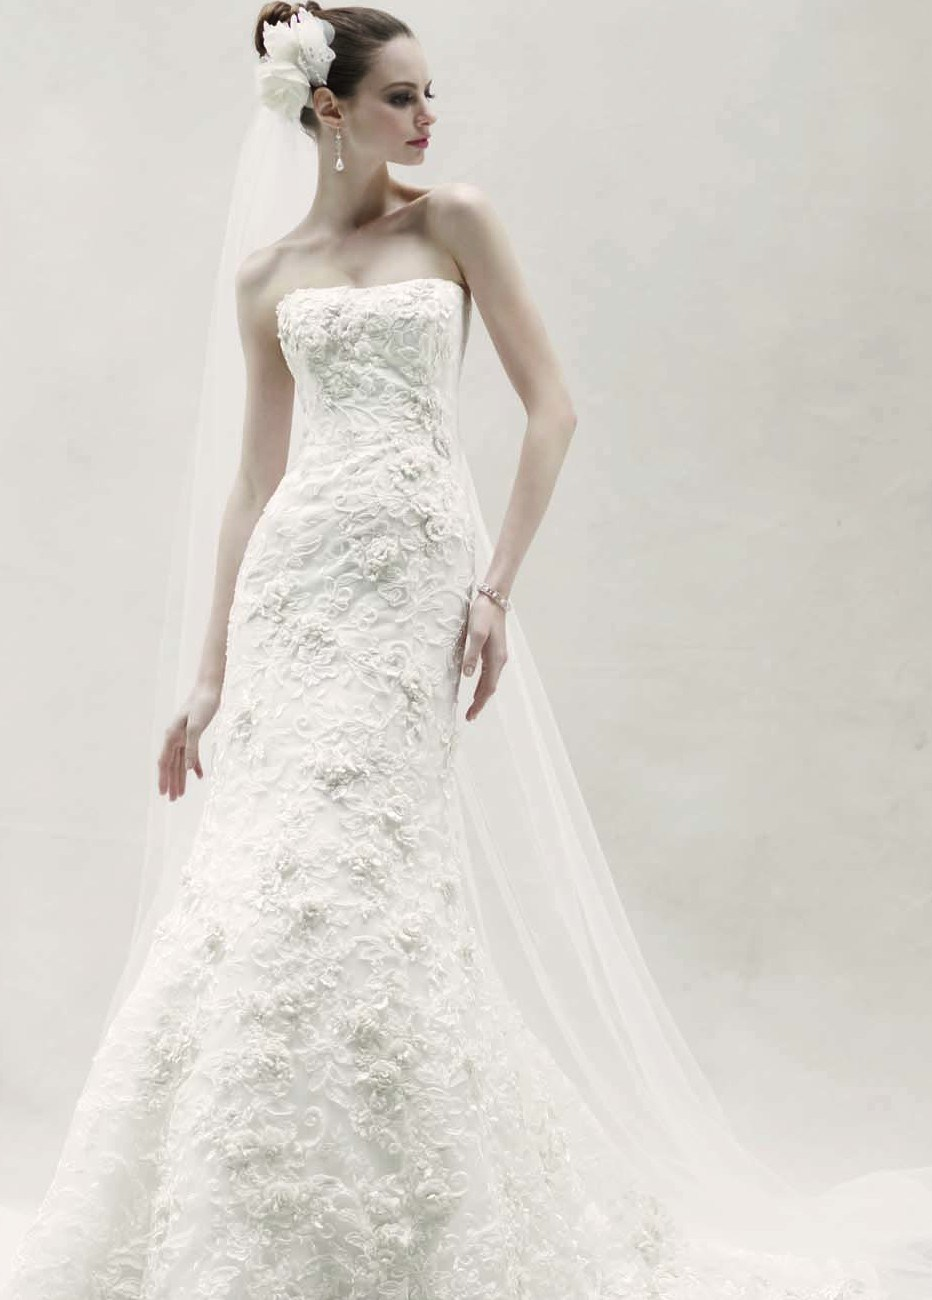 Oleg cassini 2013 spring bridal collection for Wedding dress designer oleg cassini